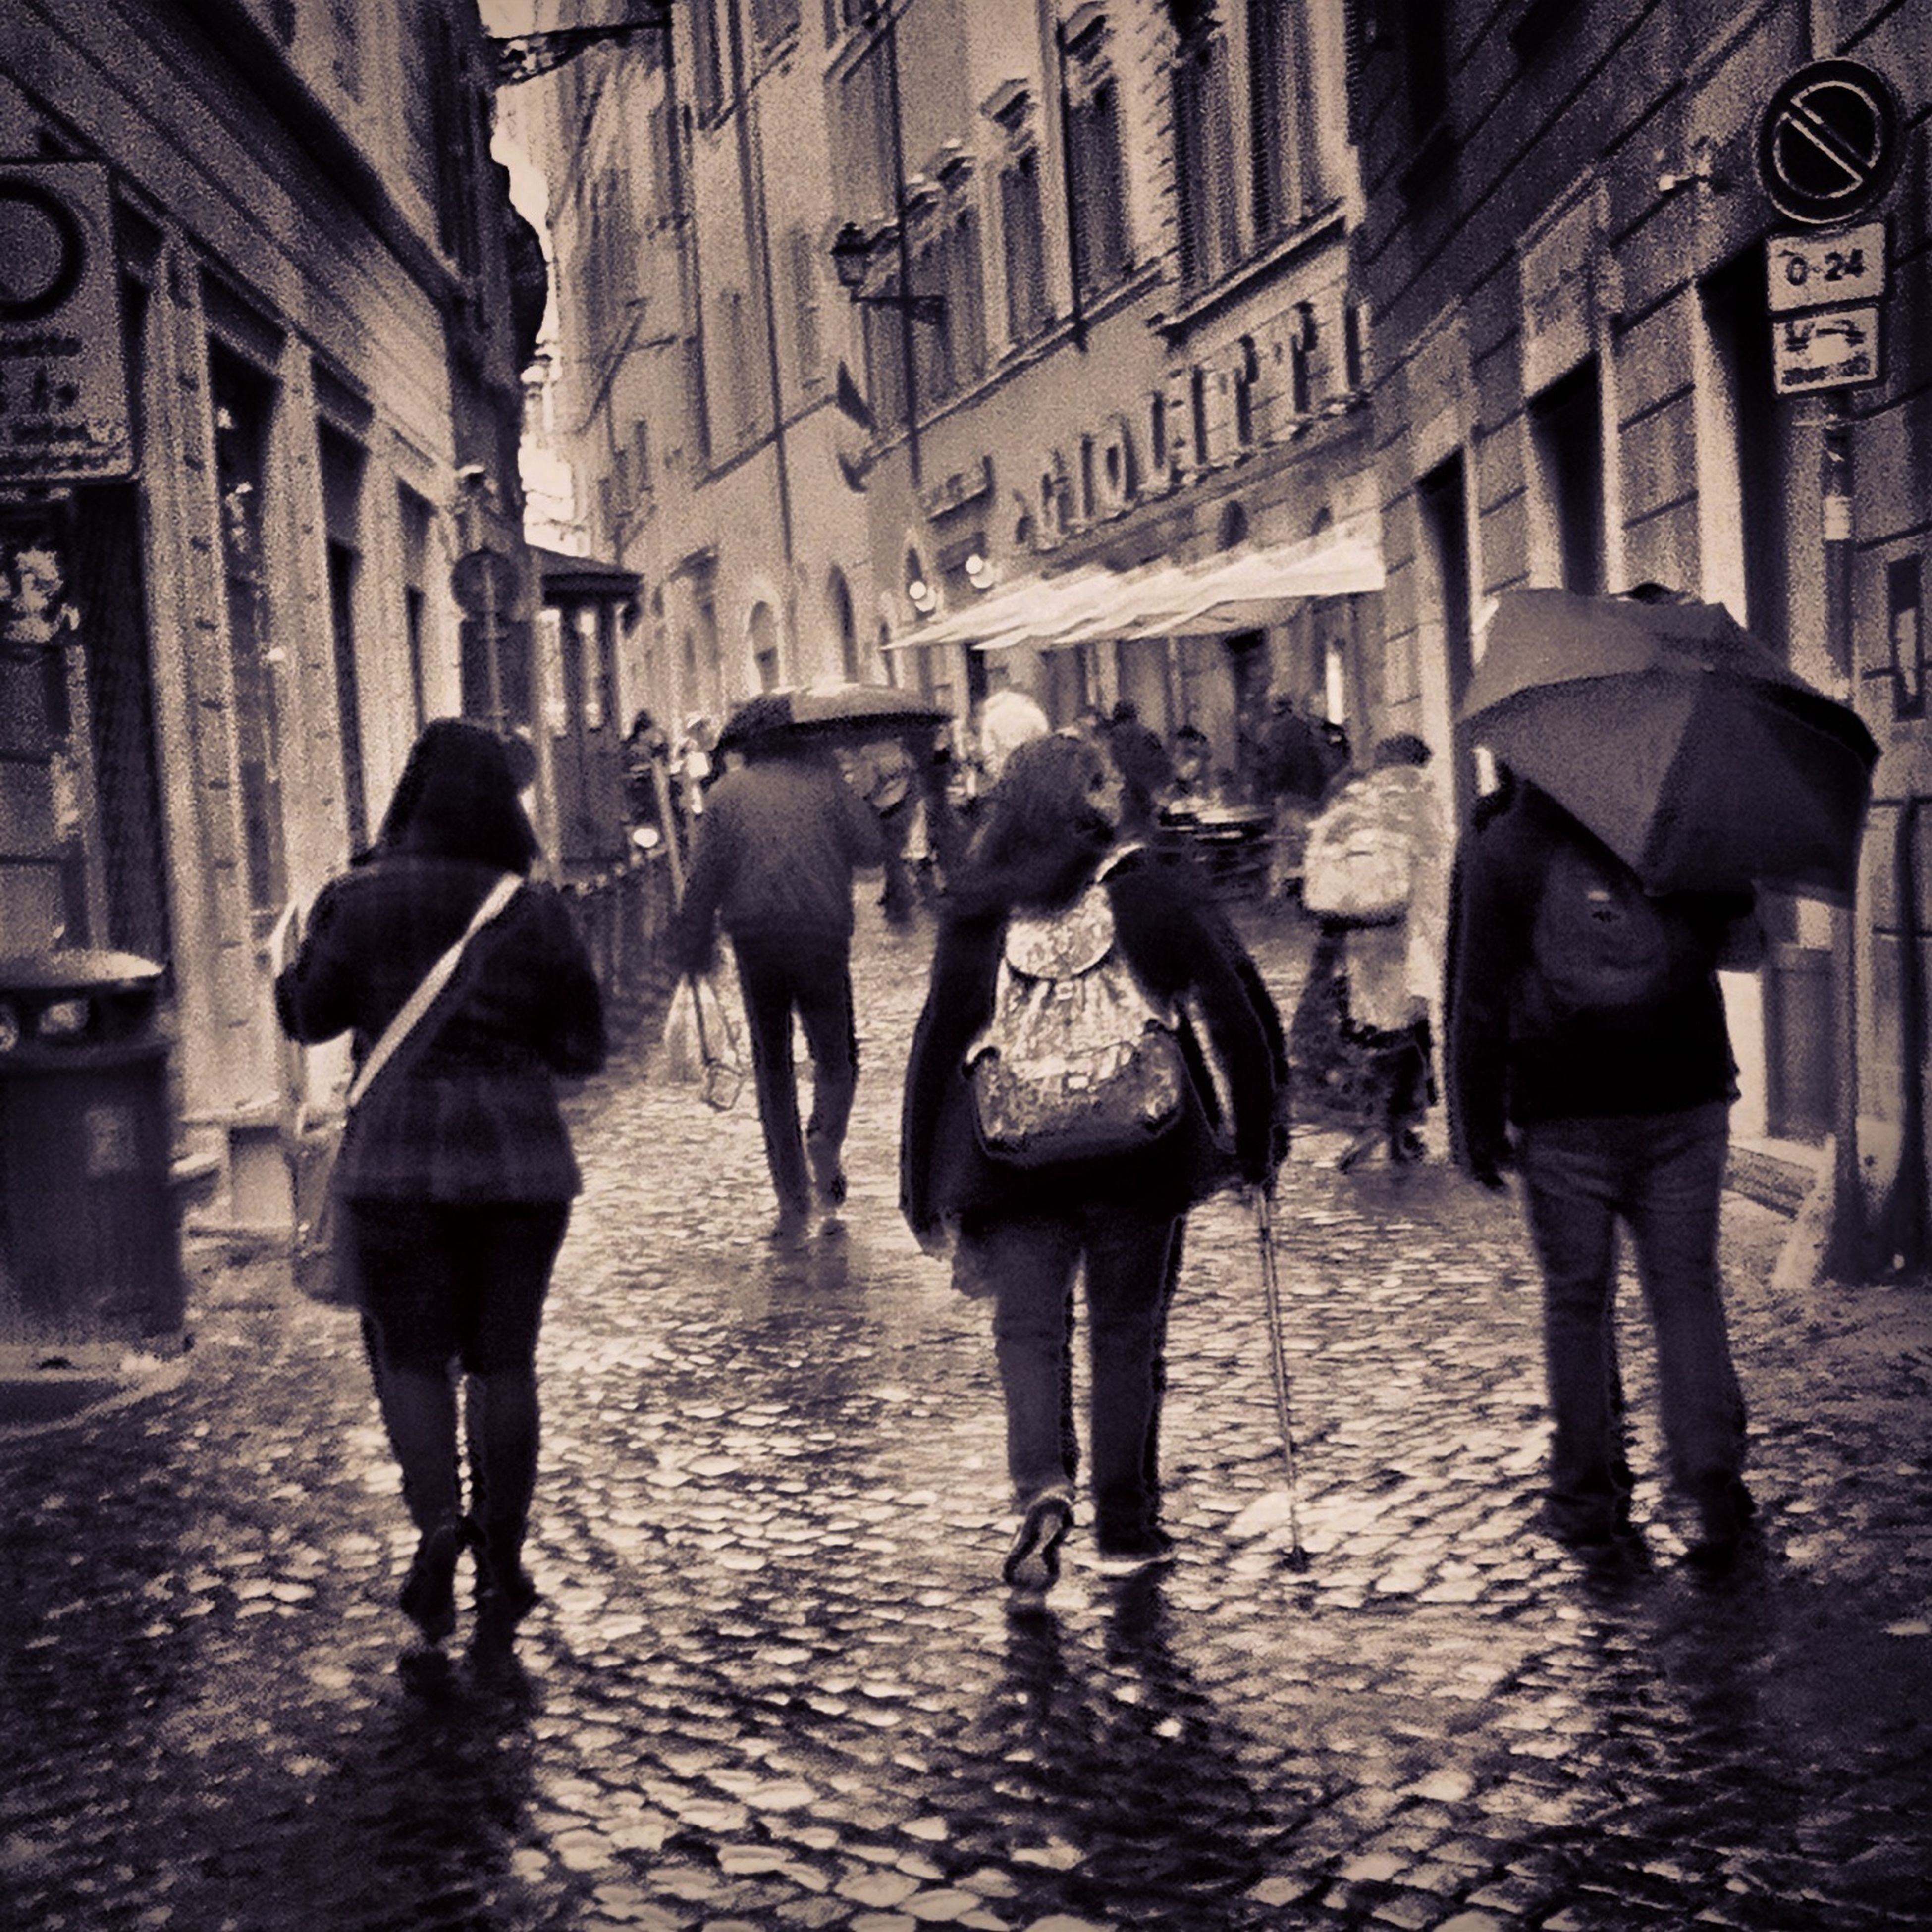 walking, lifestyles, full length, men, rear view, person, street, building exterior, leisure activity, architecture, built structure, city life, umbrella, togetherness, city, casual clothing, standing, rain